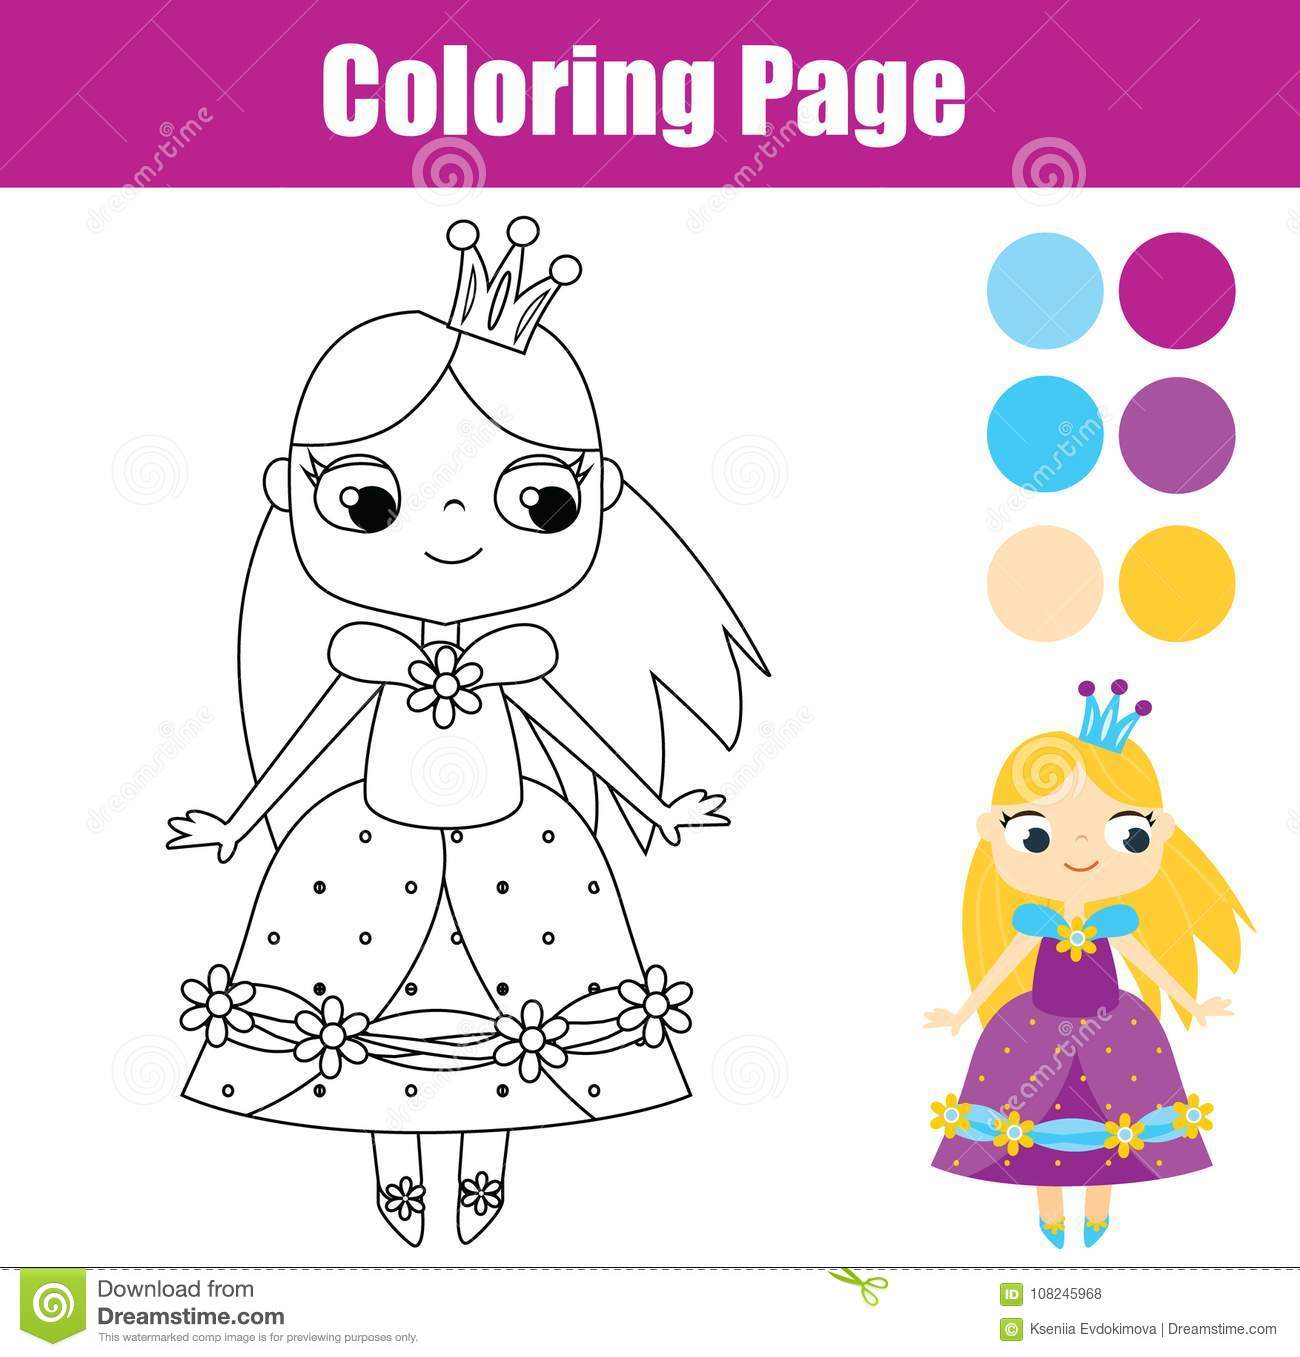 Coloring Page With Cute Prnicess Educational Game